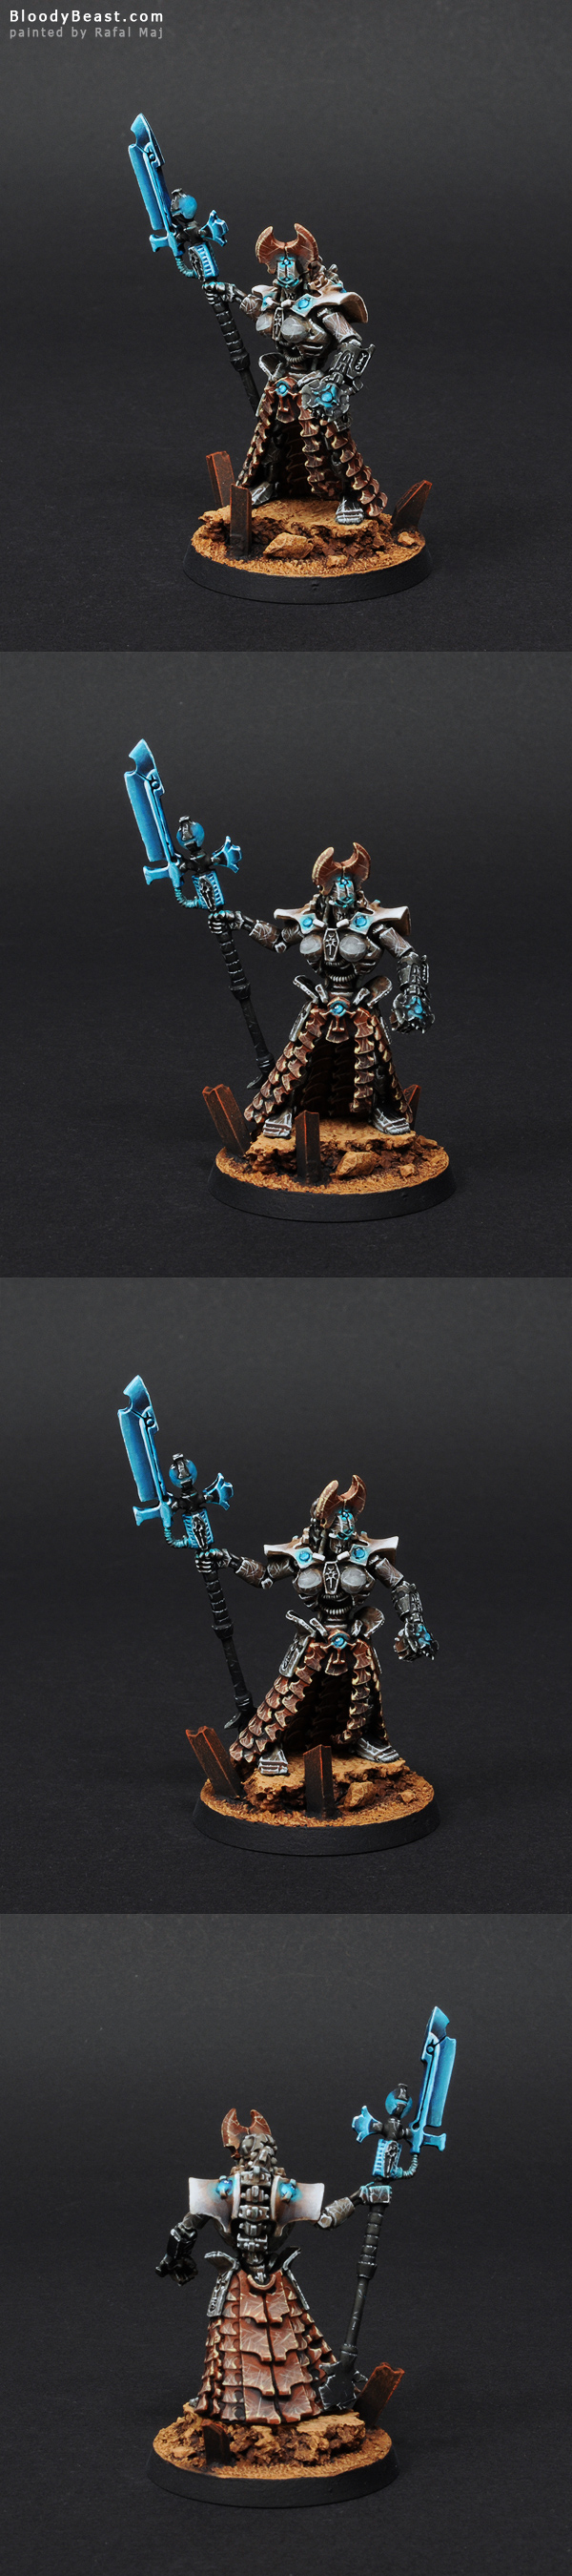 Female Necron Anrakyr The Traveller painted by Rafal Maj (BloodyBeast.com)